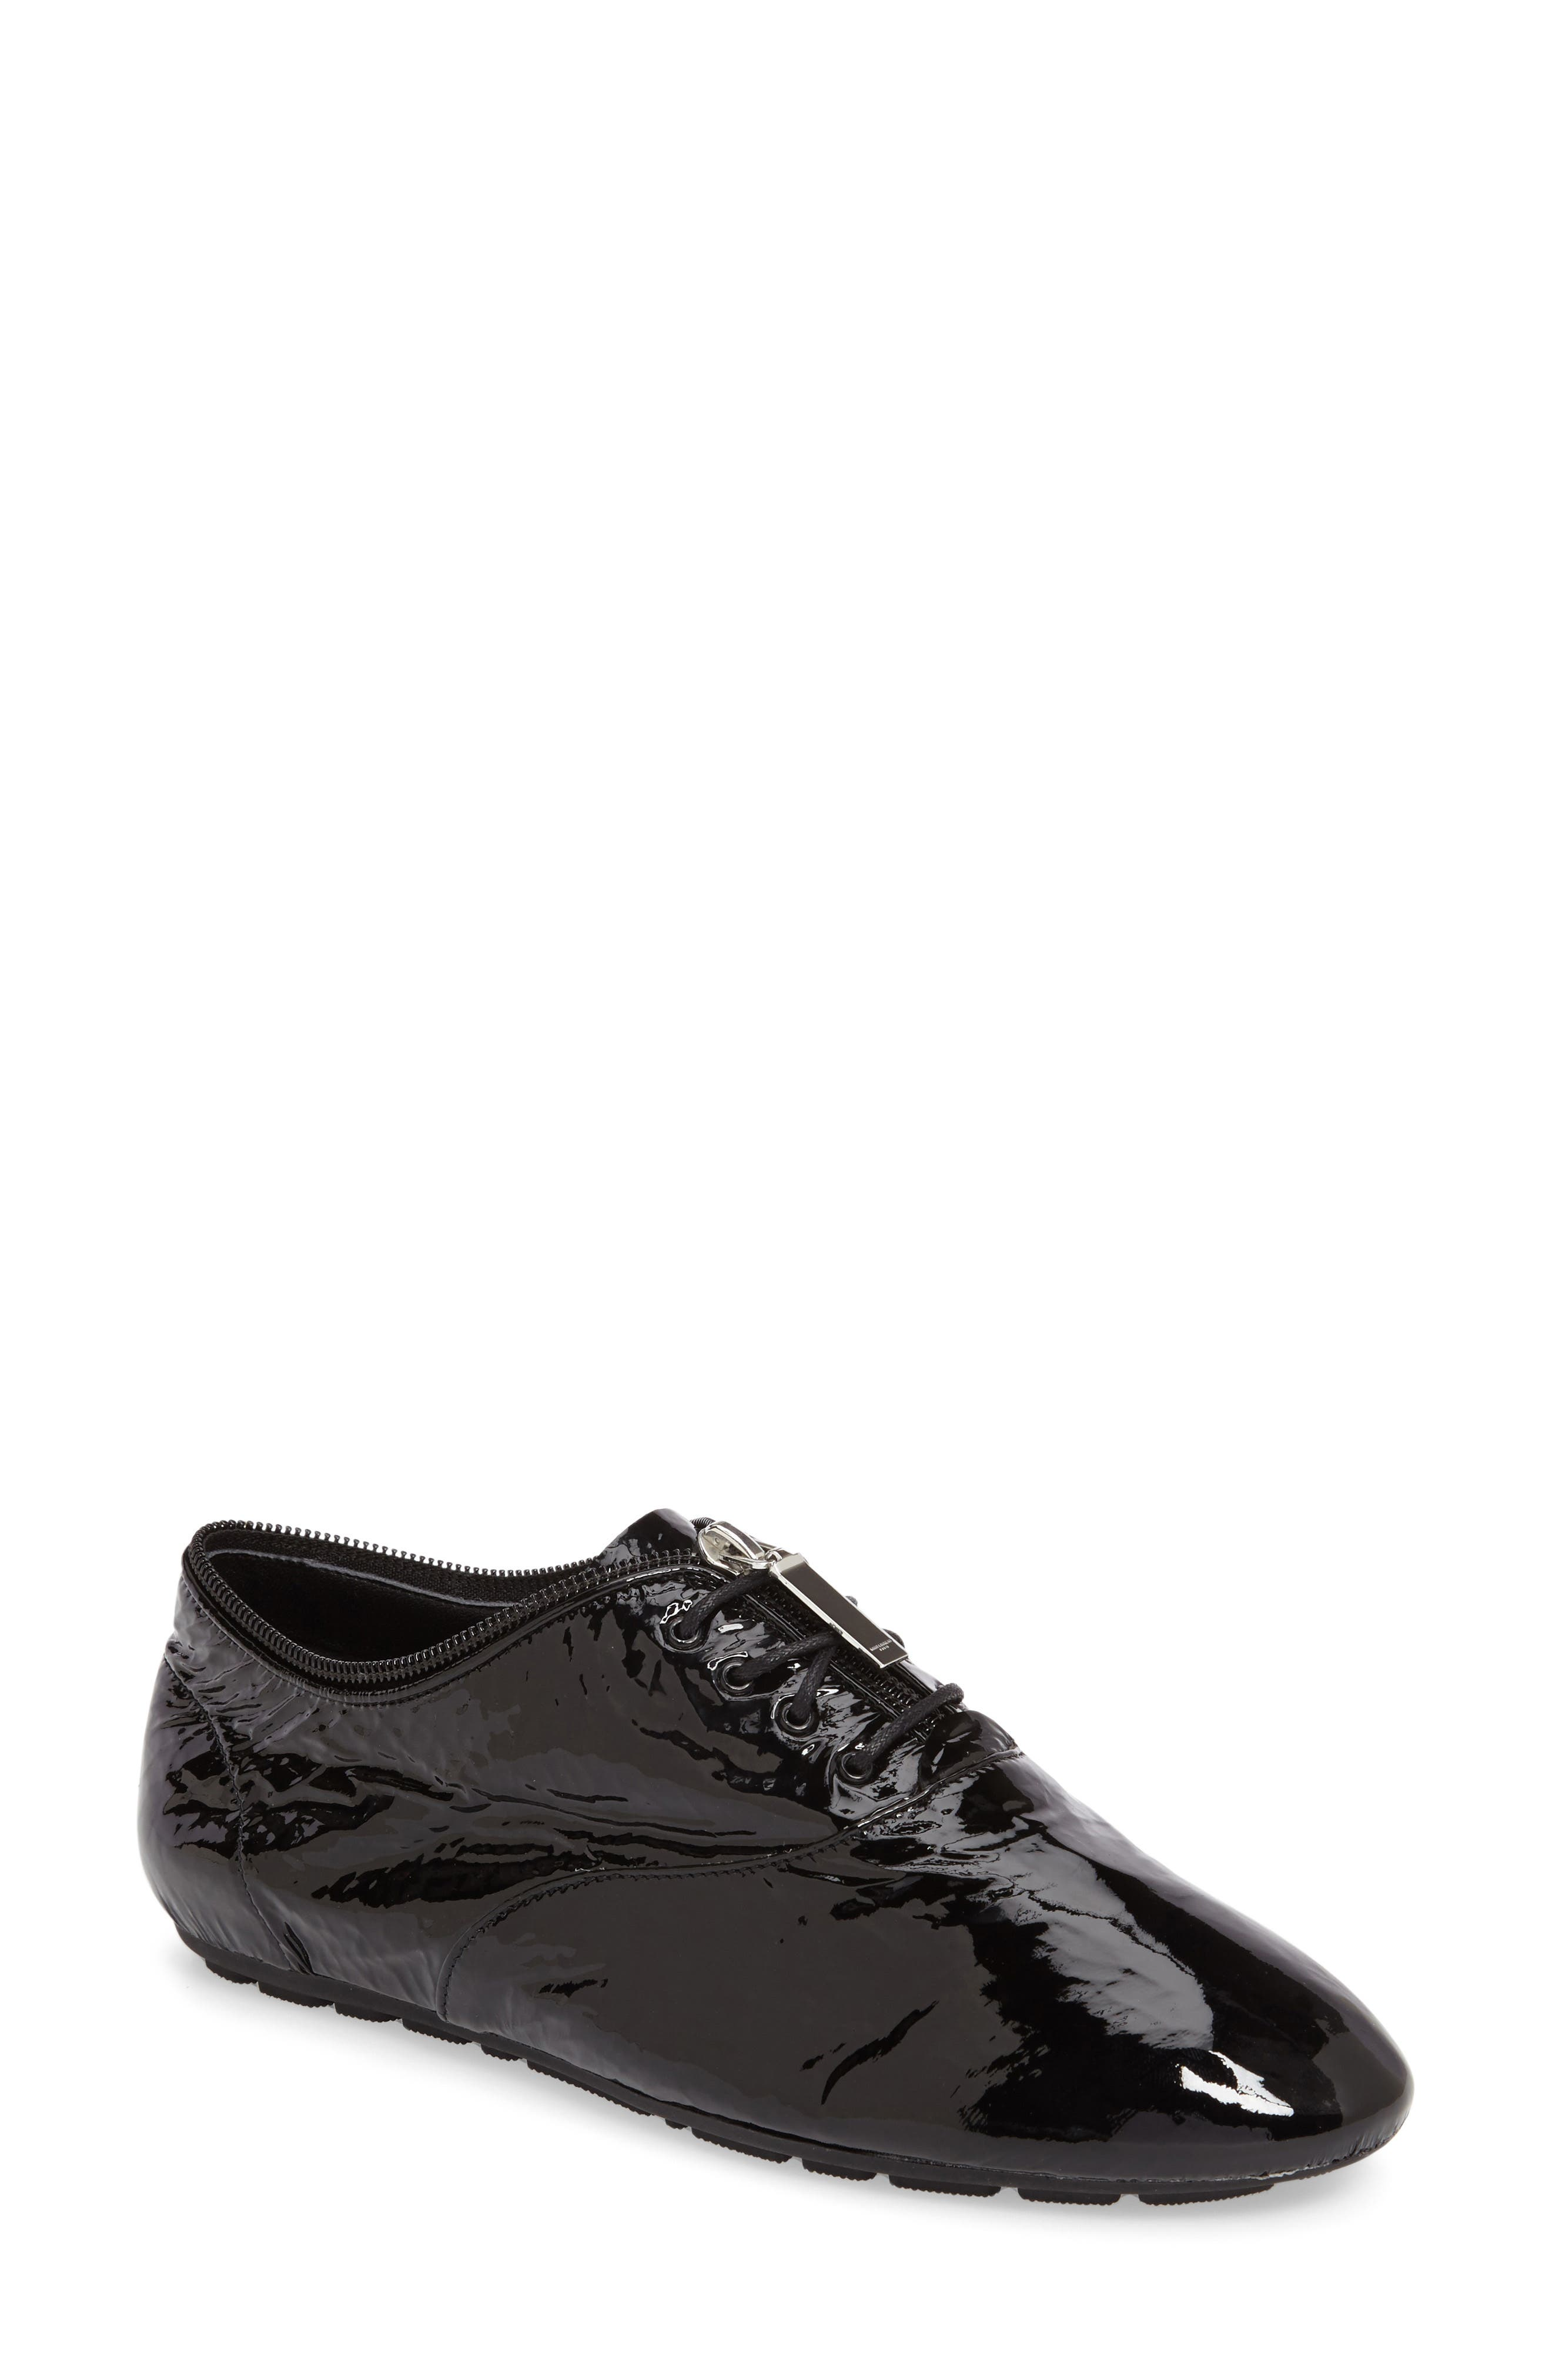 Alternate Image 1 Selected - Saint Laurent Verneuil Flat (Women)